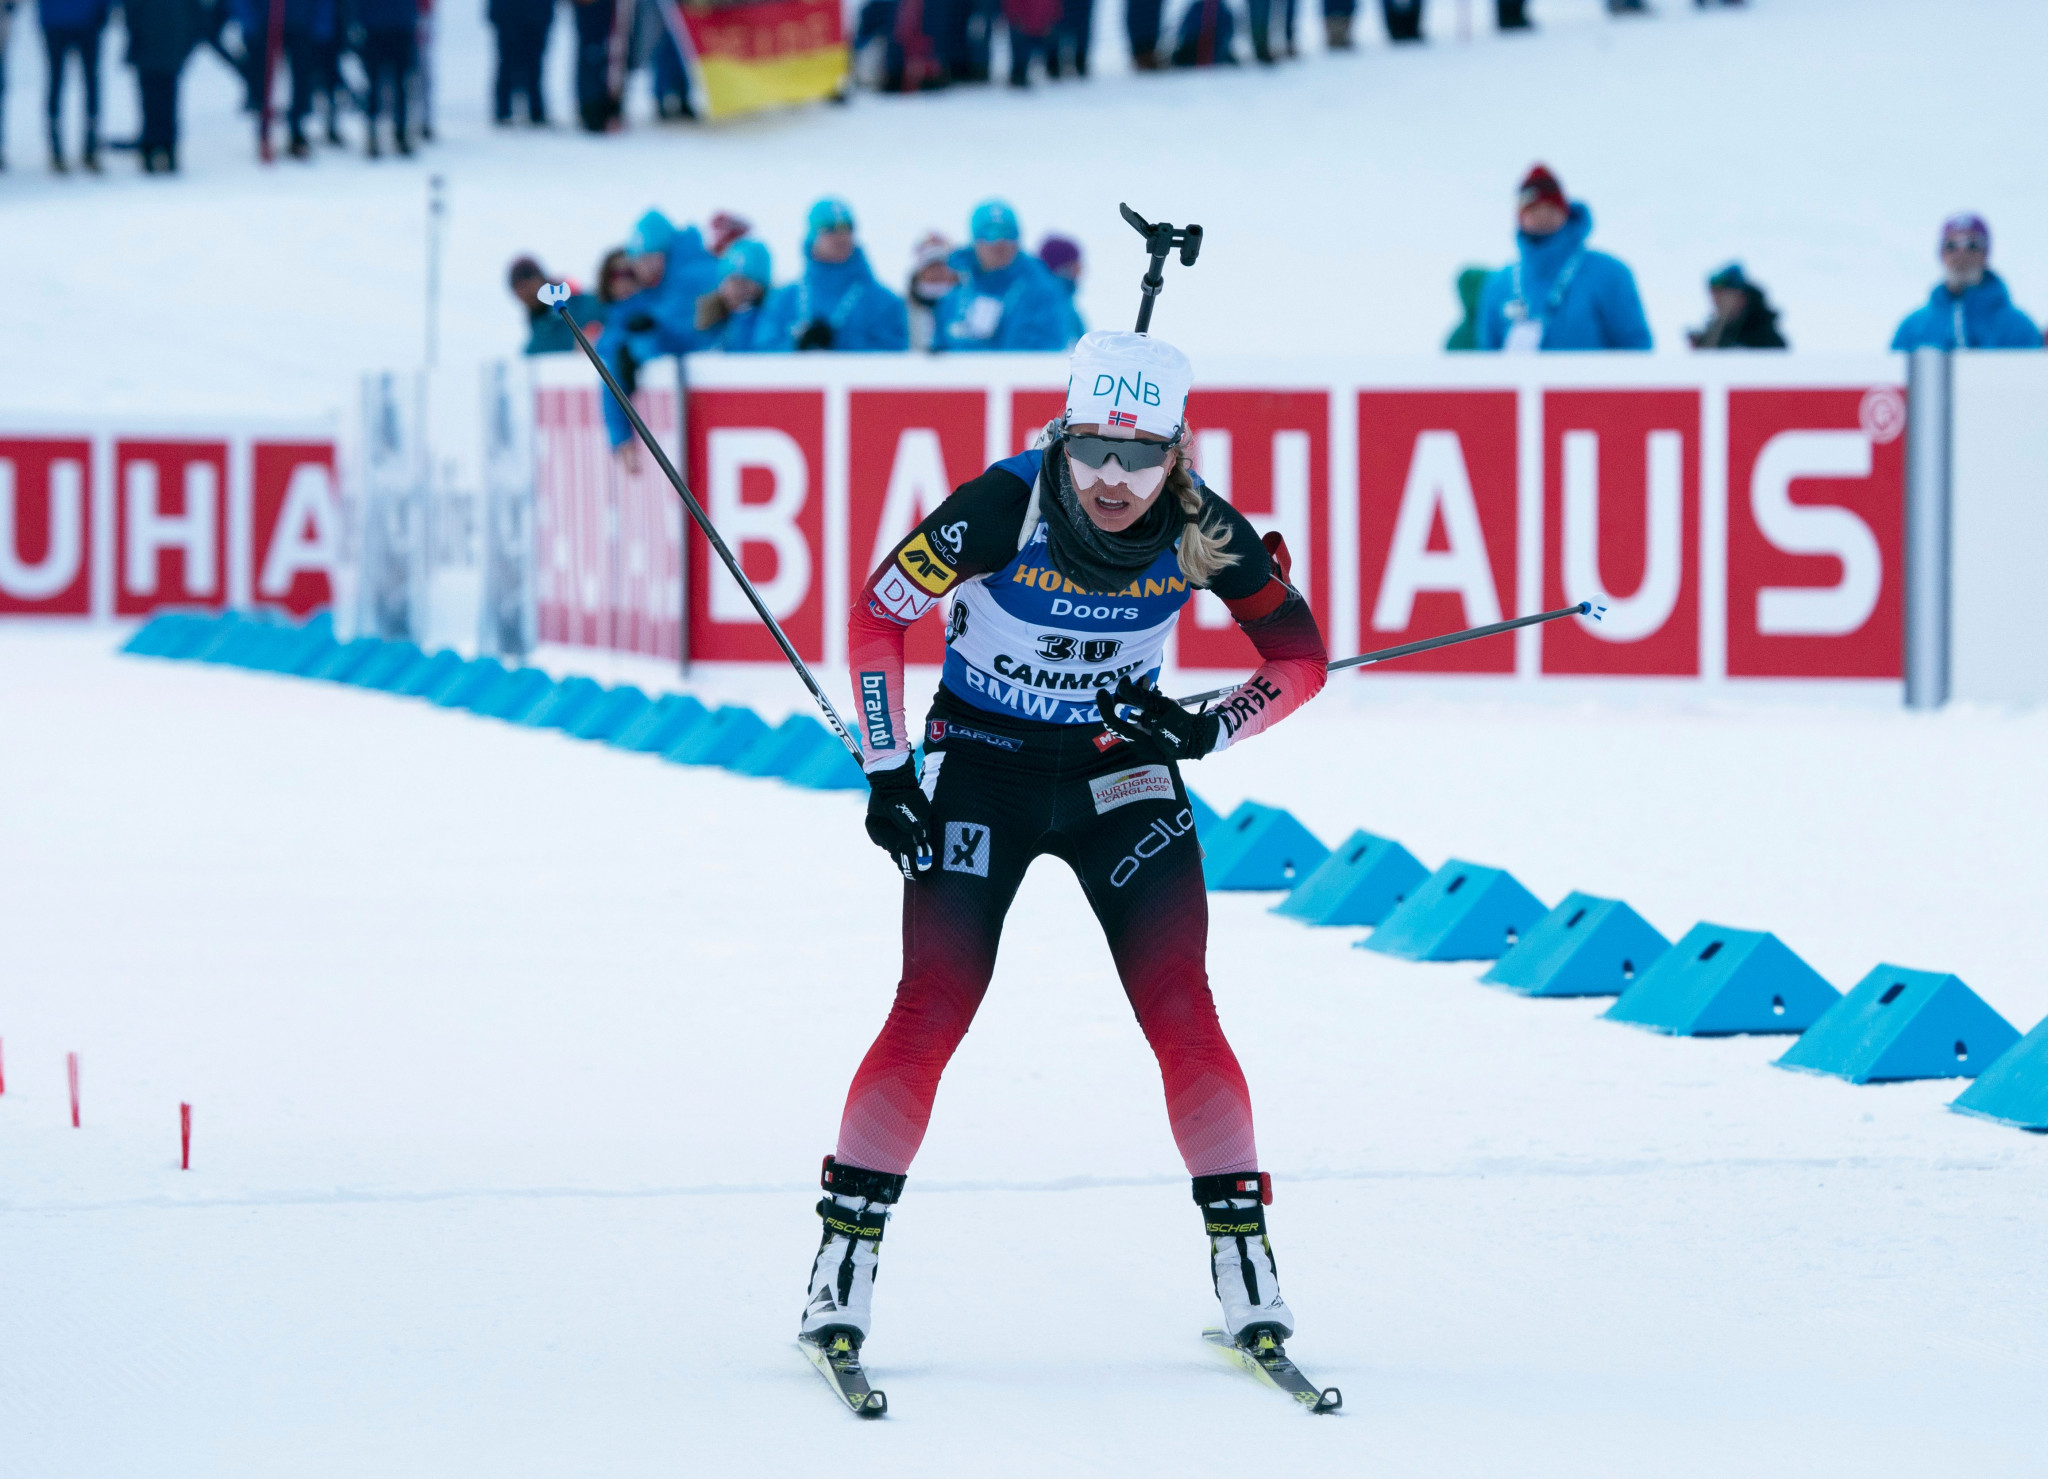 Eckhoff and Bø claim short individual victories at IBU World Cup in Canmore